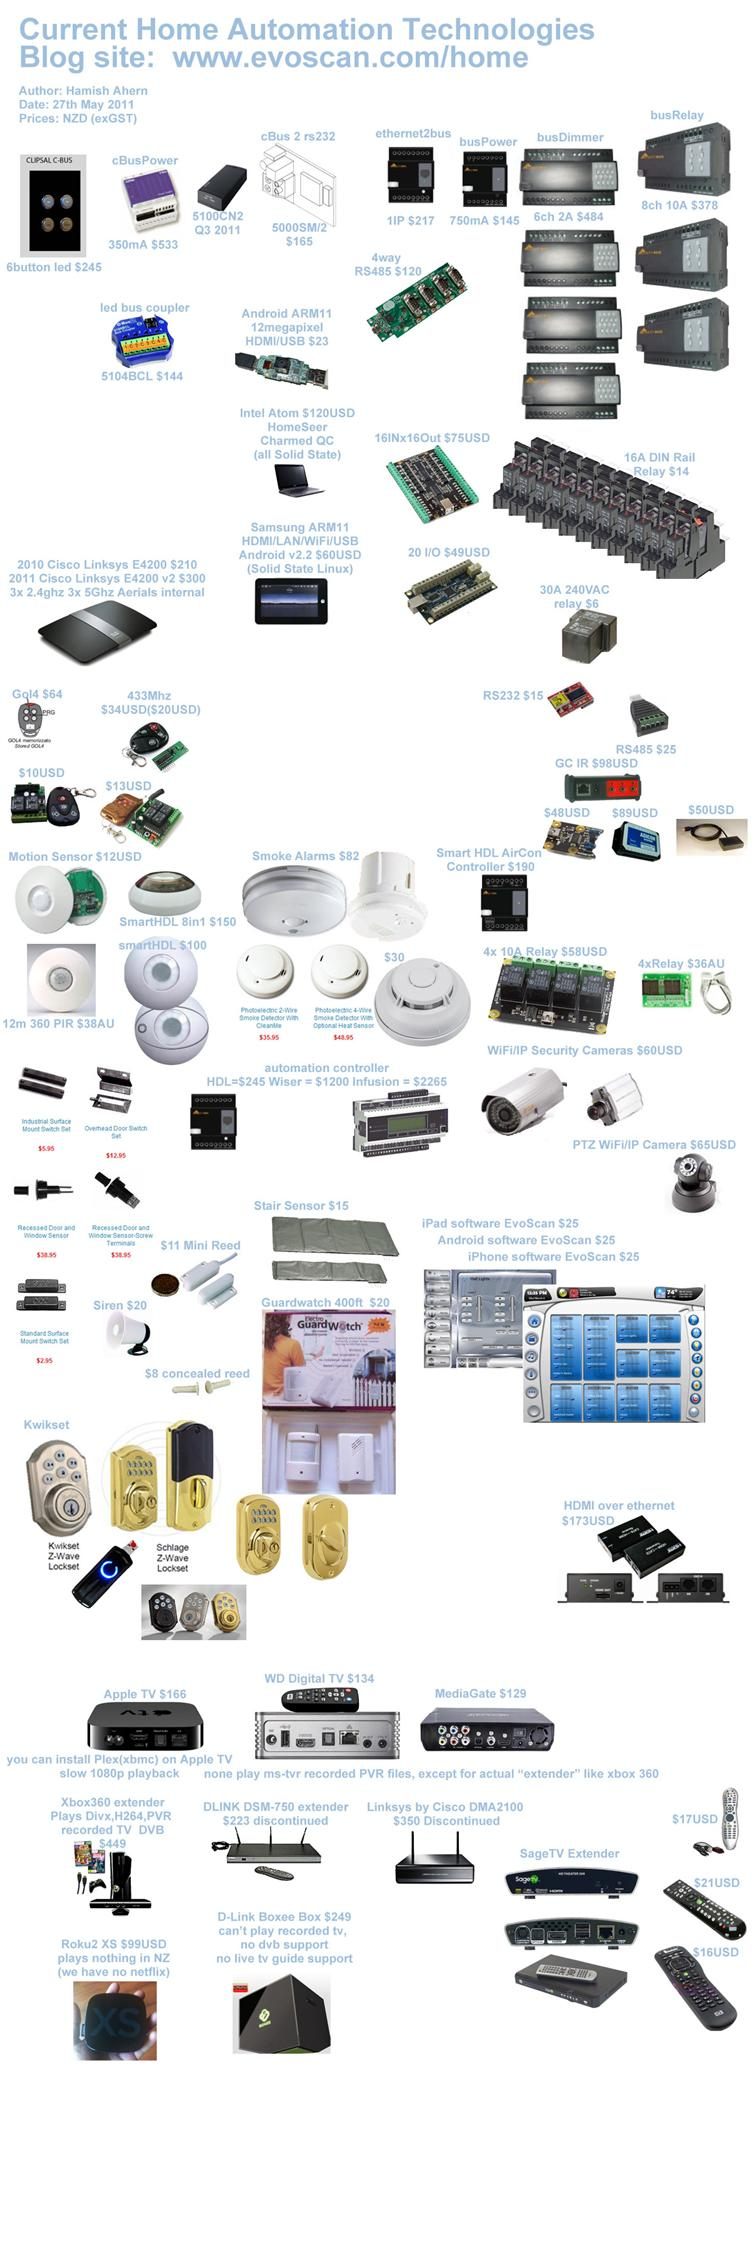 Diy home automation home automation Diy home automation